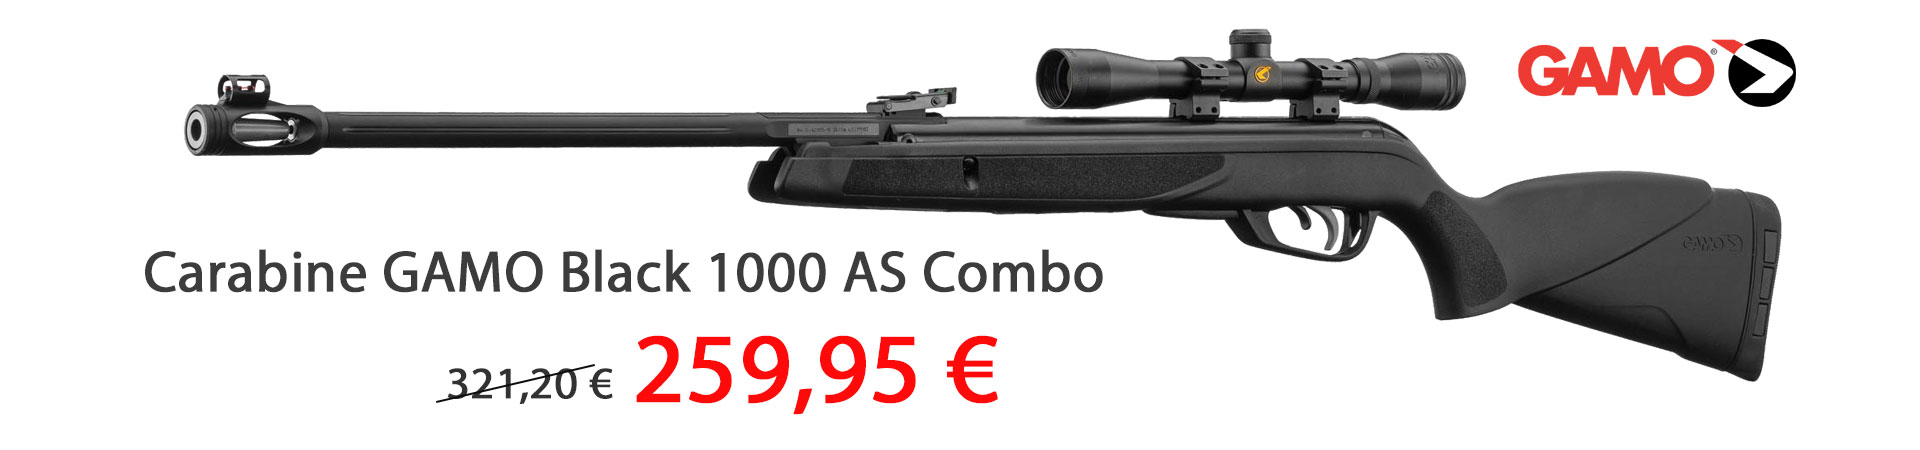 Carabine GAMO Black 1000 AS Combo